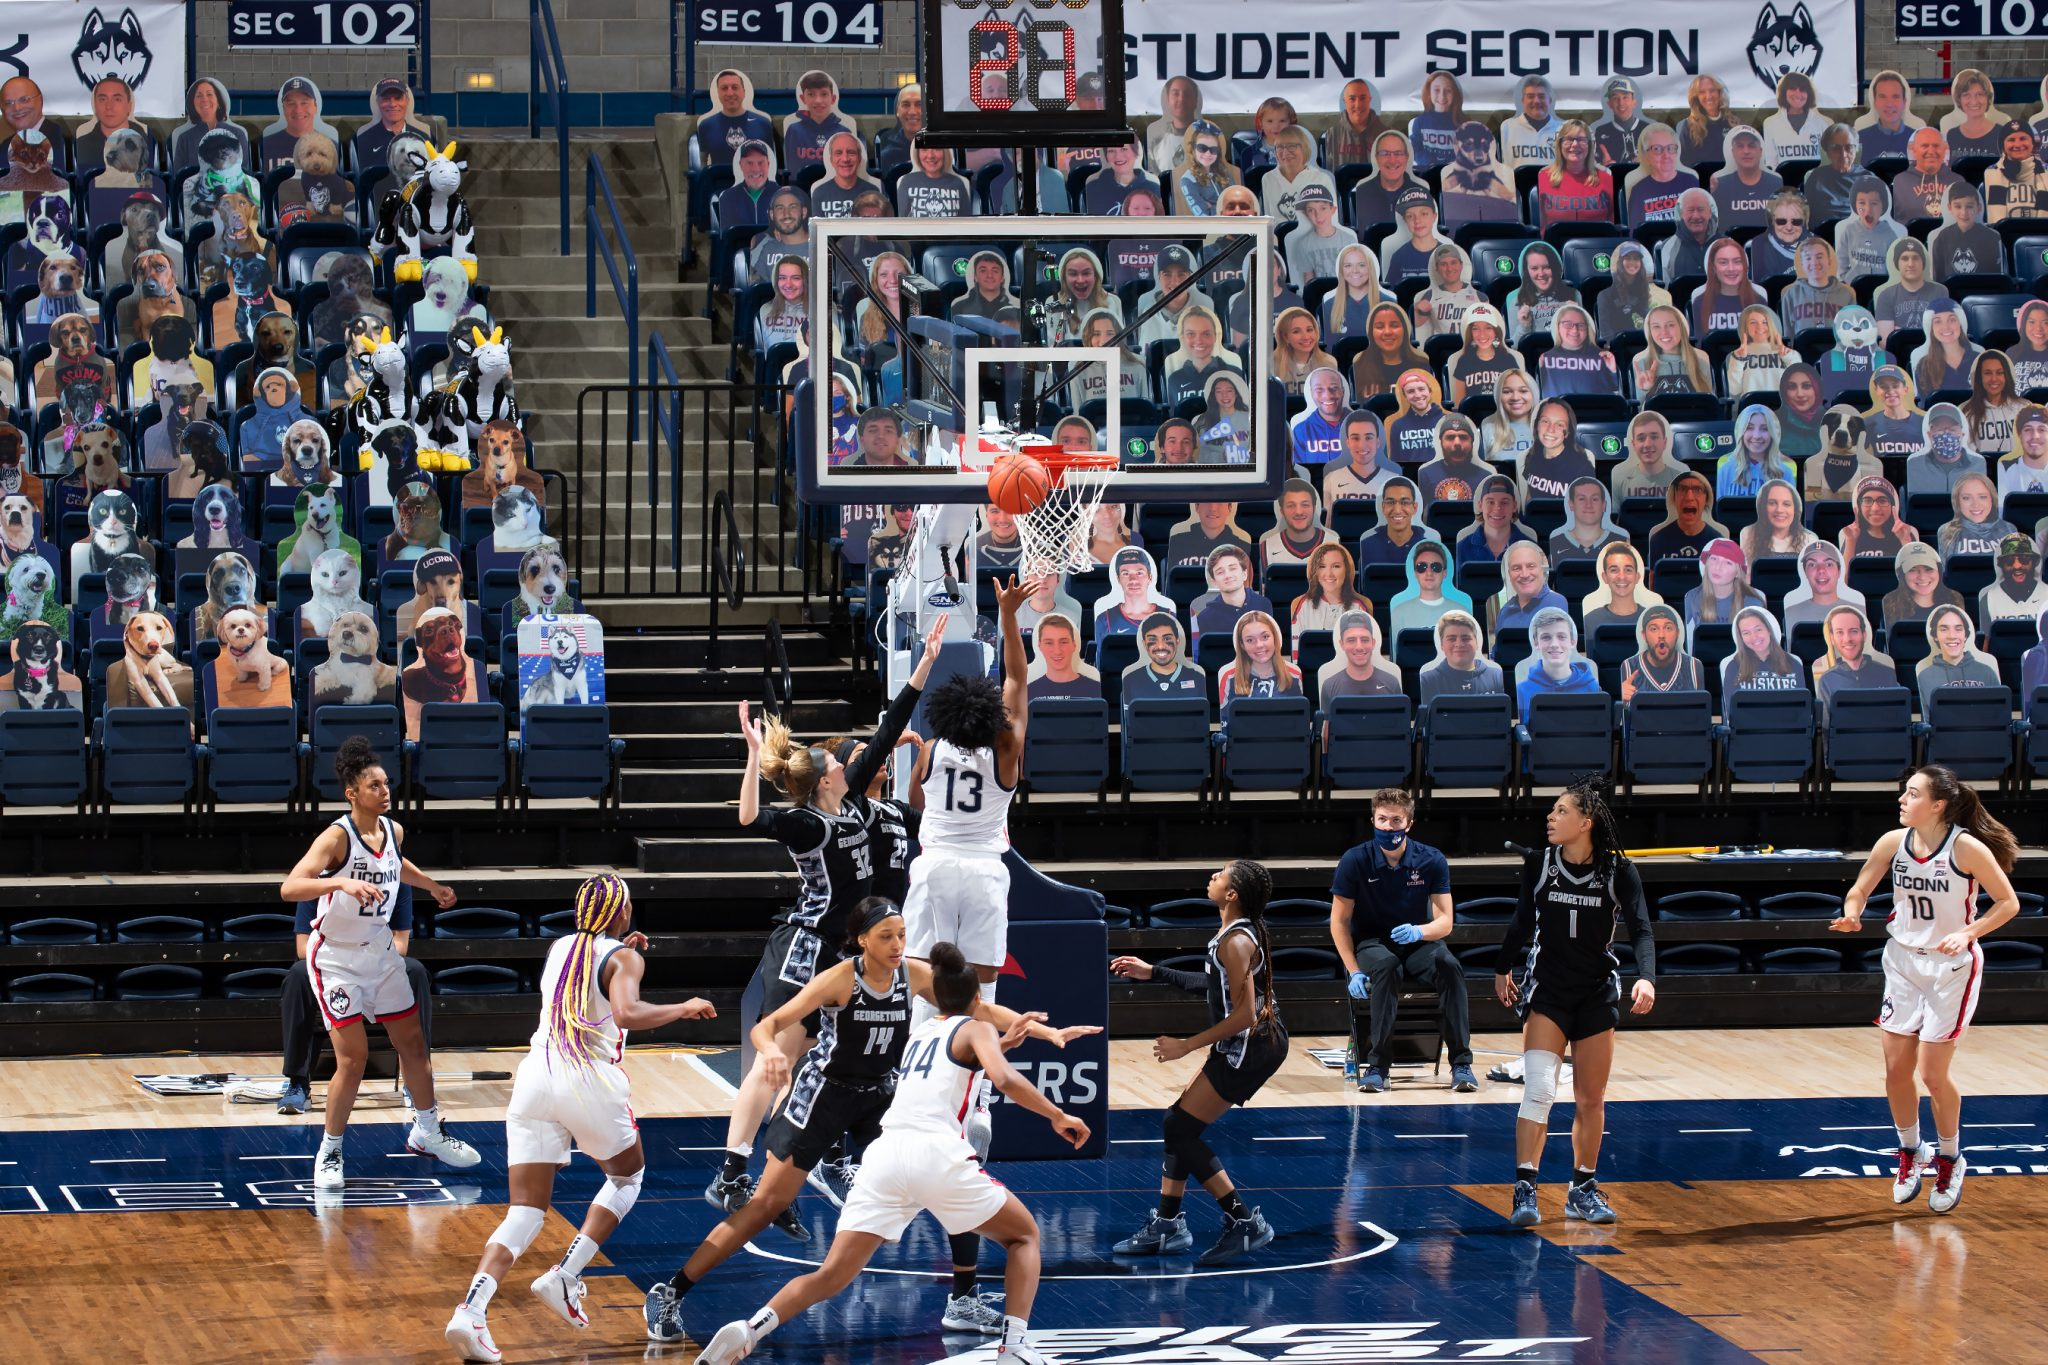 UConn women's basketball team playing during COVID-19 pandemic with cardboard cutouts of people and animals in stands